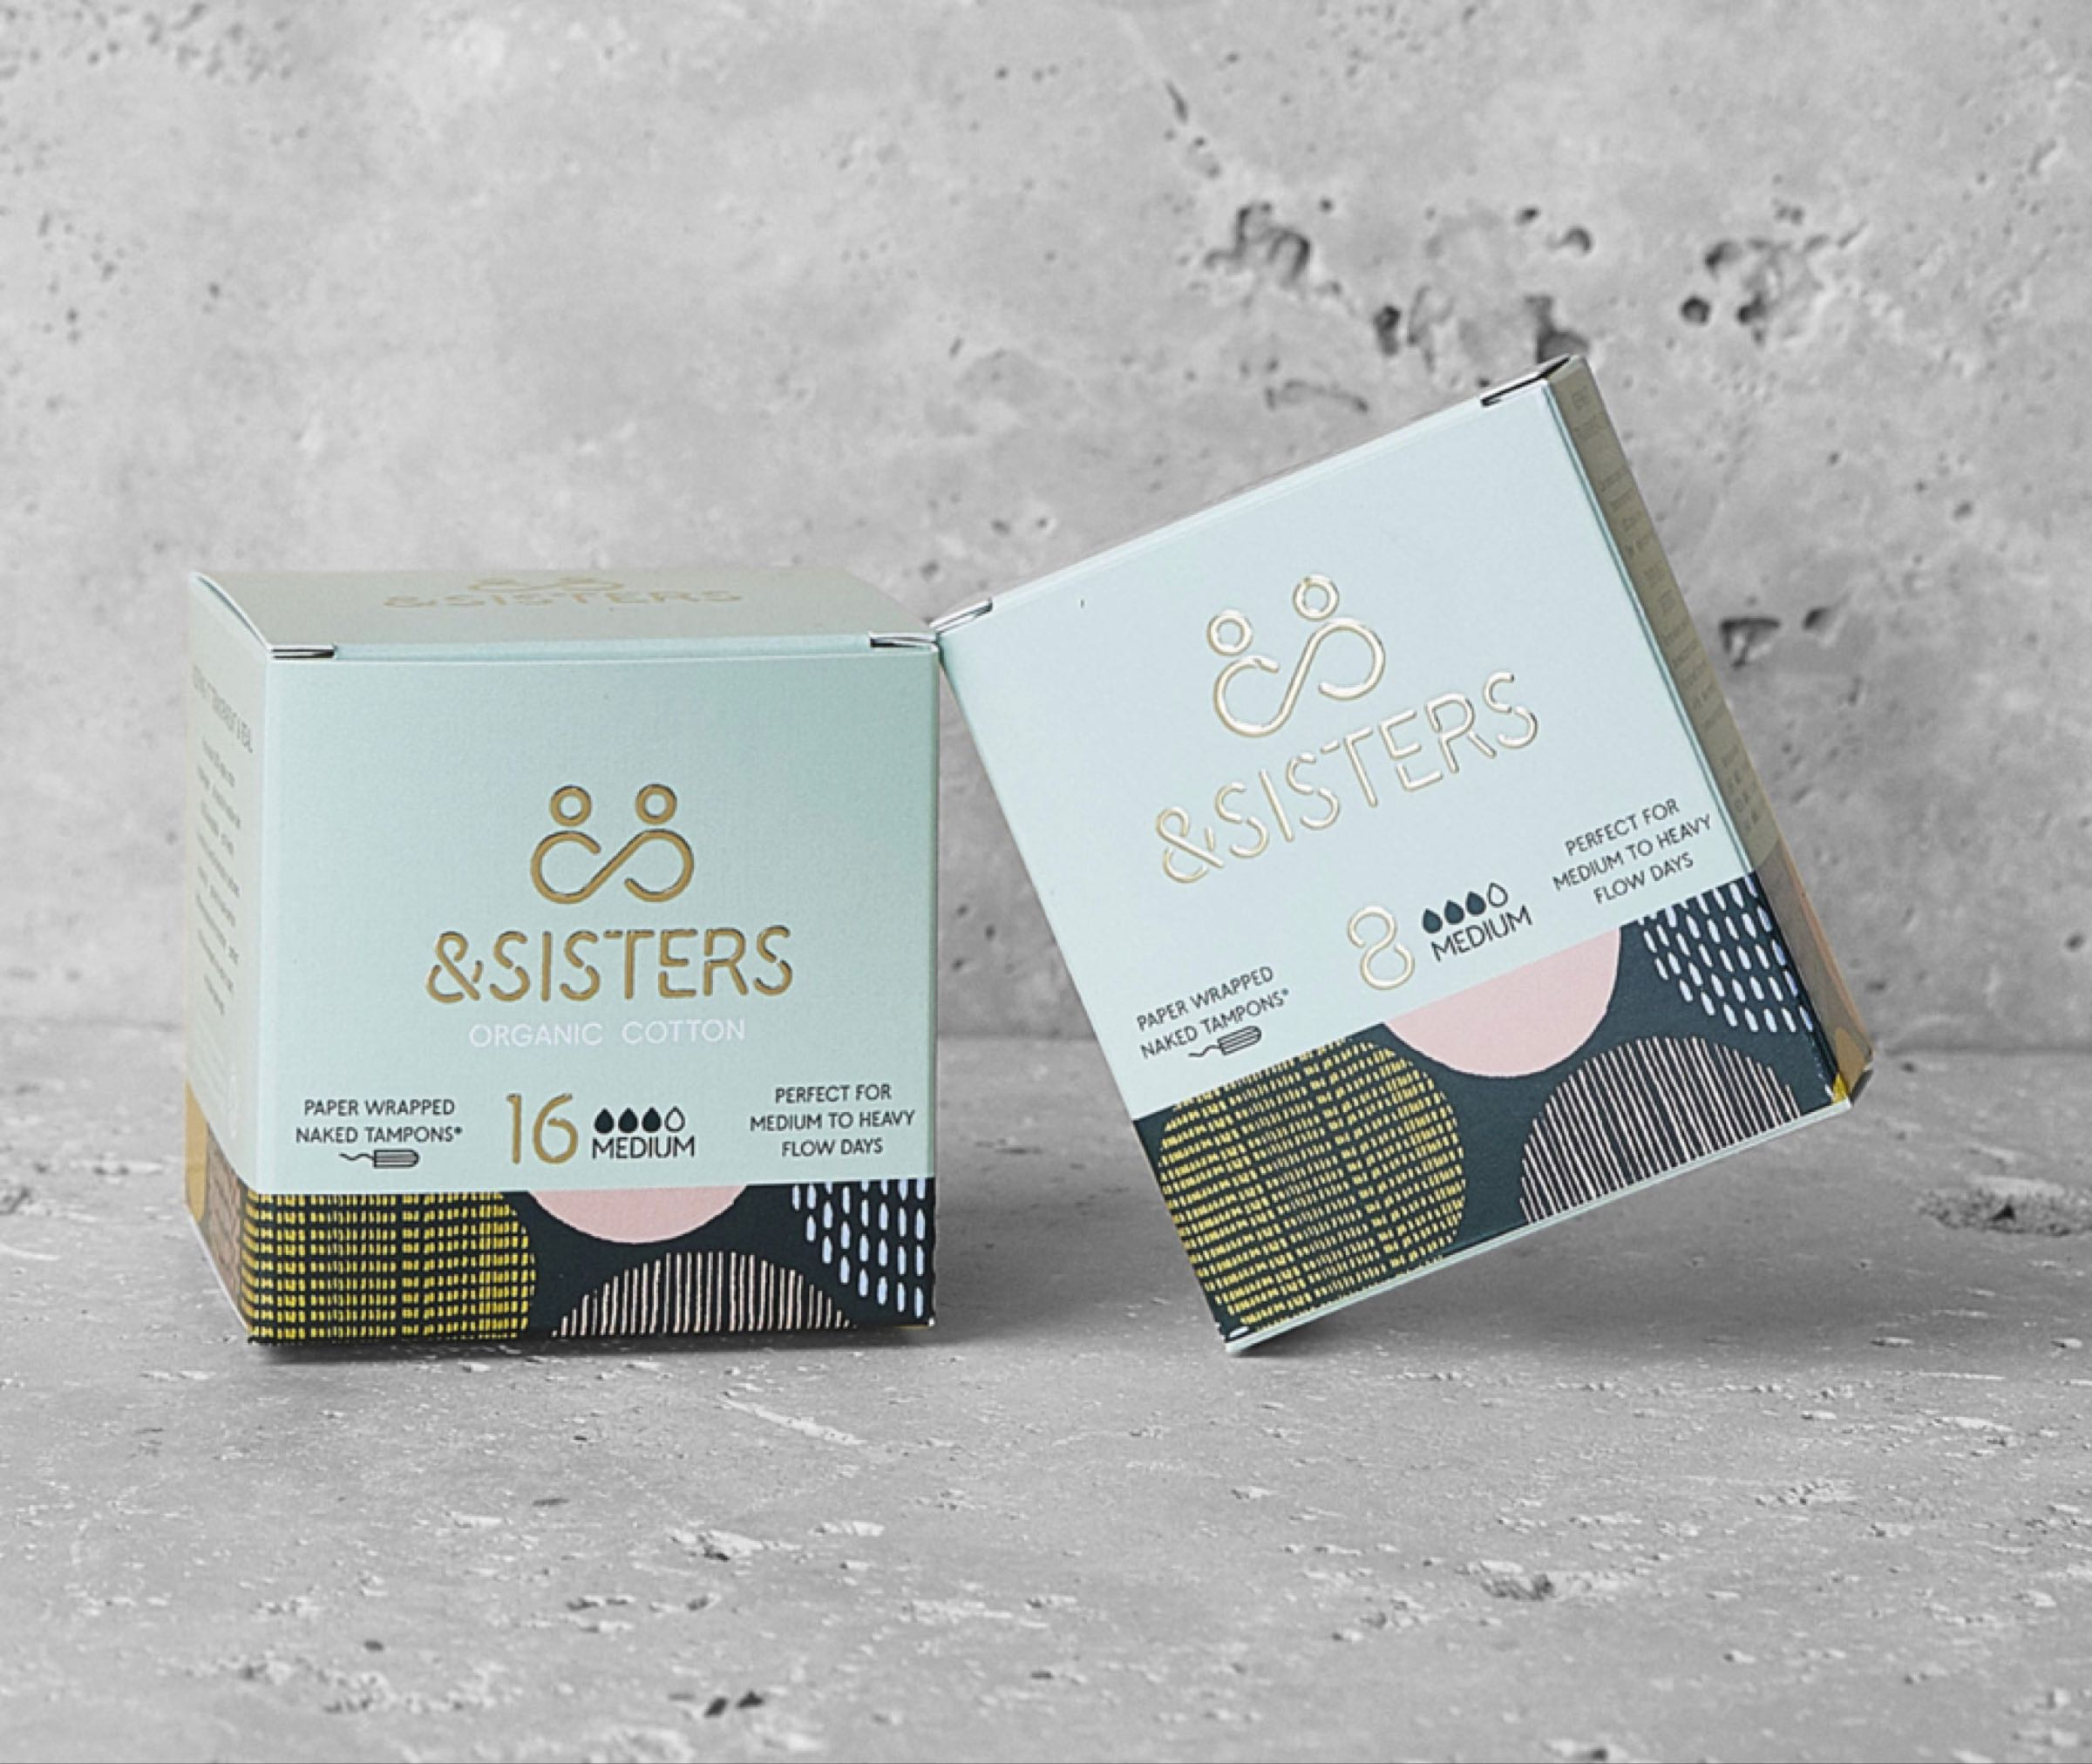 &Sisters Organic Cotton Paper Wrapped Naked Tampons Medium Pack of 16